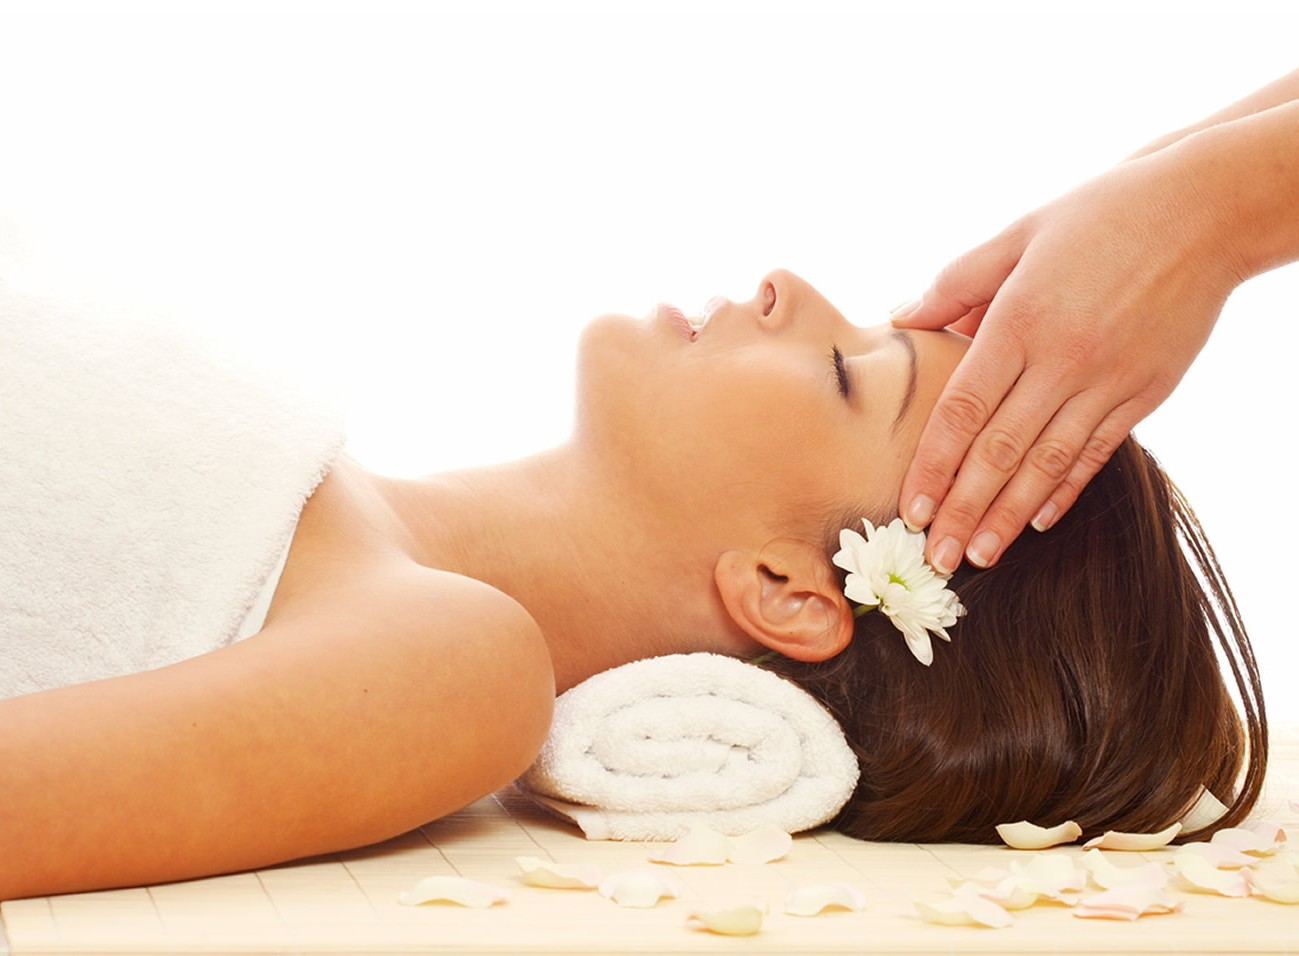 stratford massage therapy website cropped photo